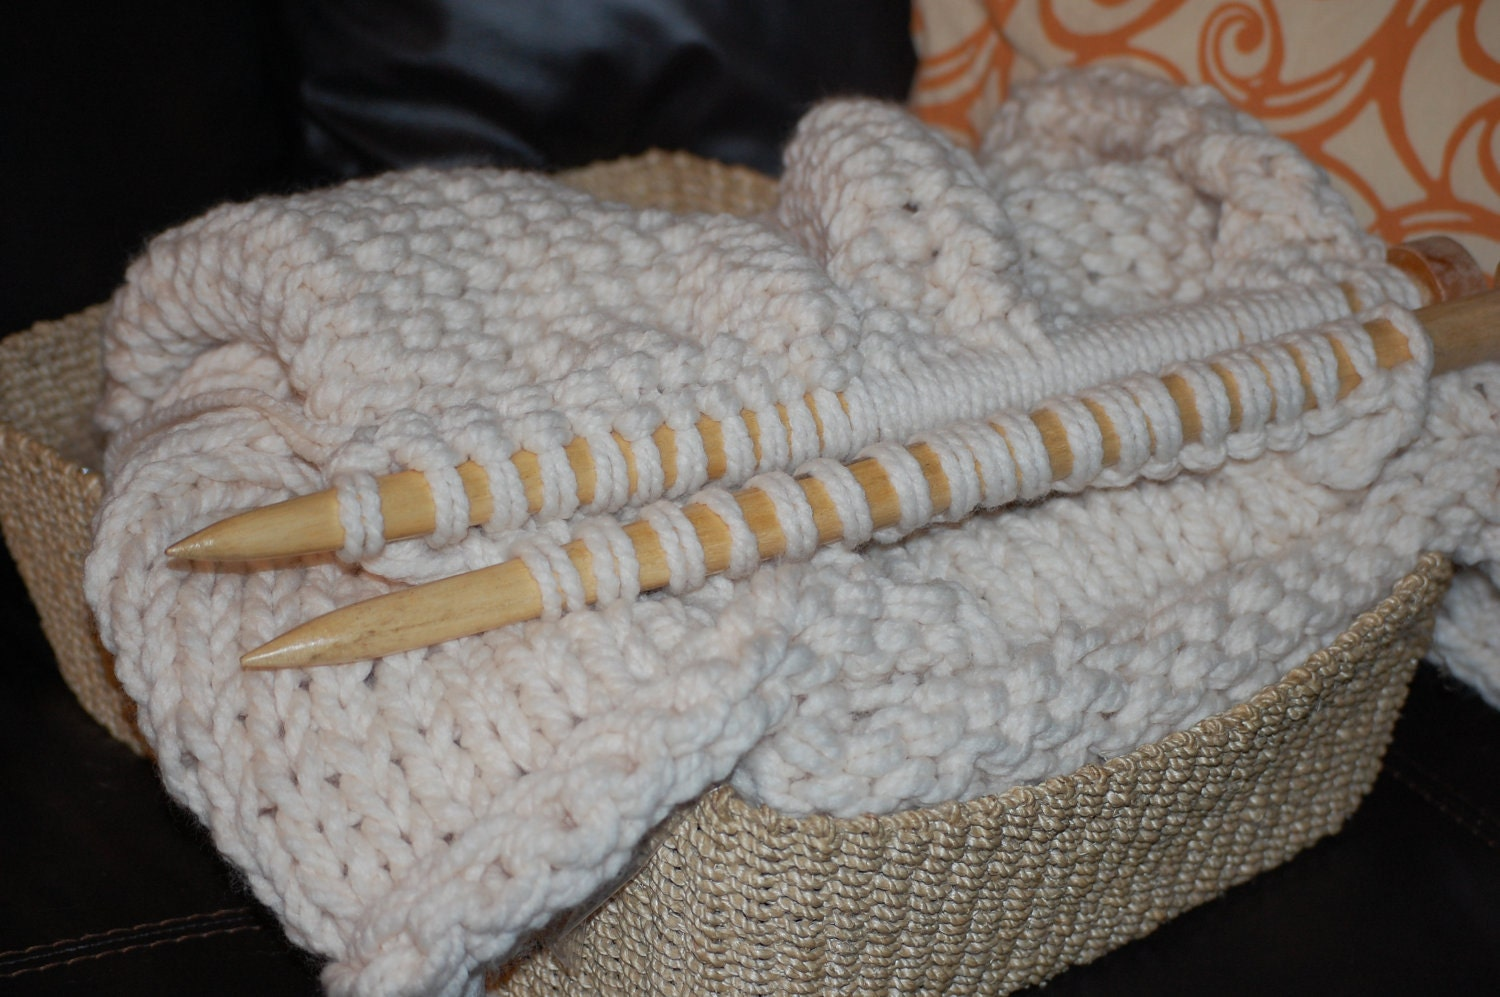 Knitting Patterns For Jumbo Needles : Unique handmade Large Knitting Needles comparable to a US50